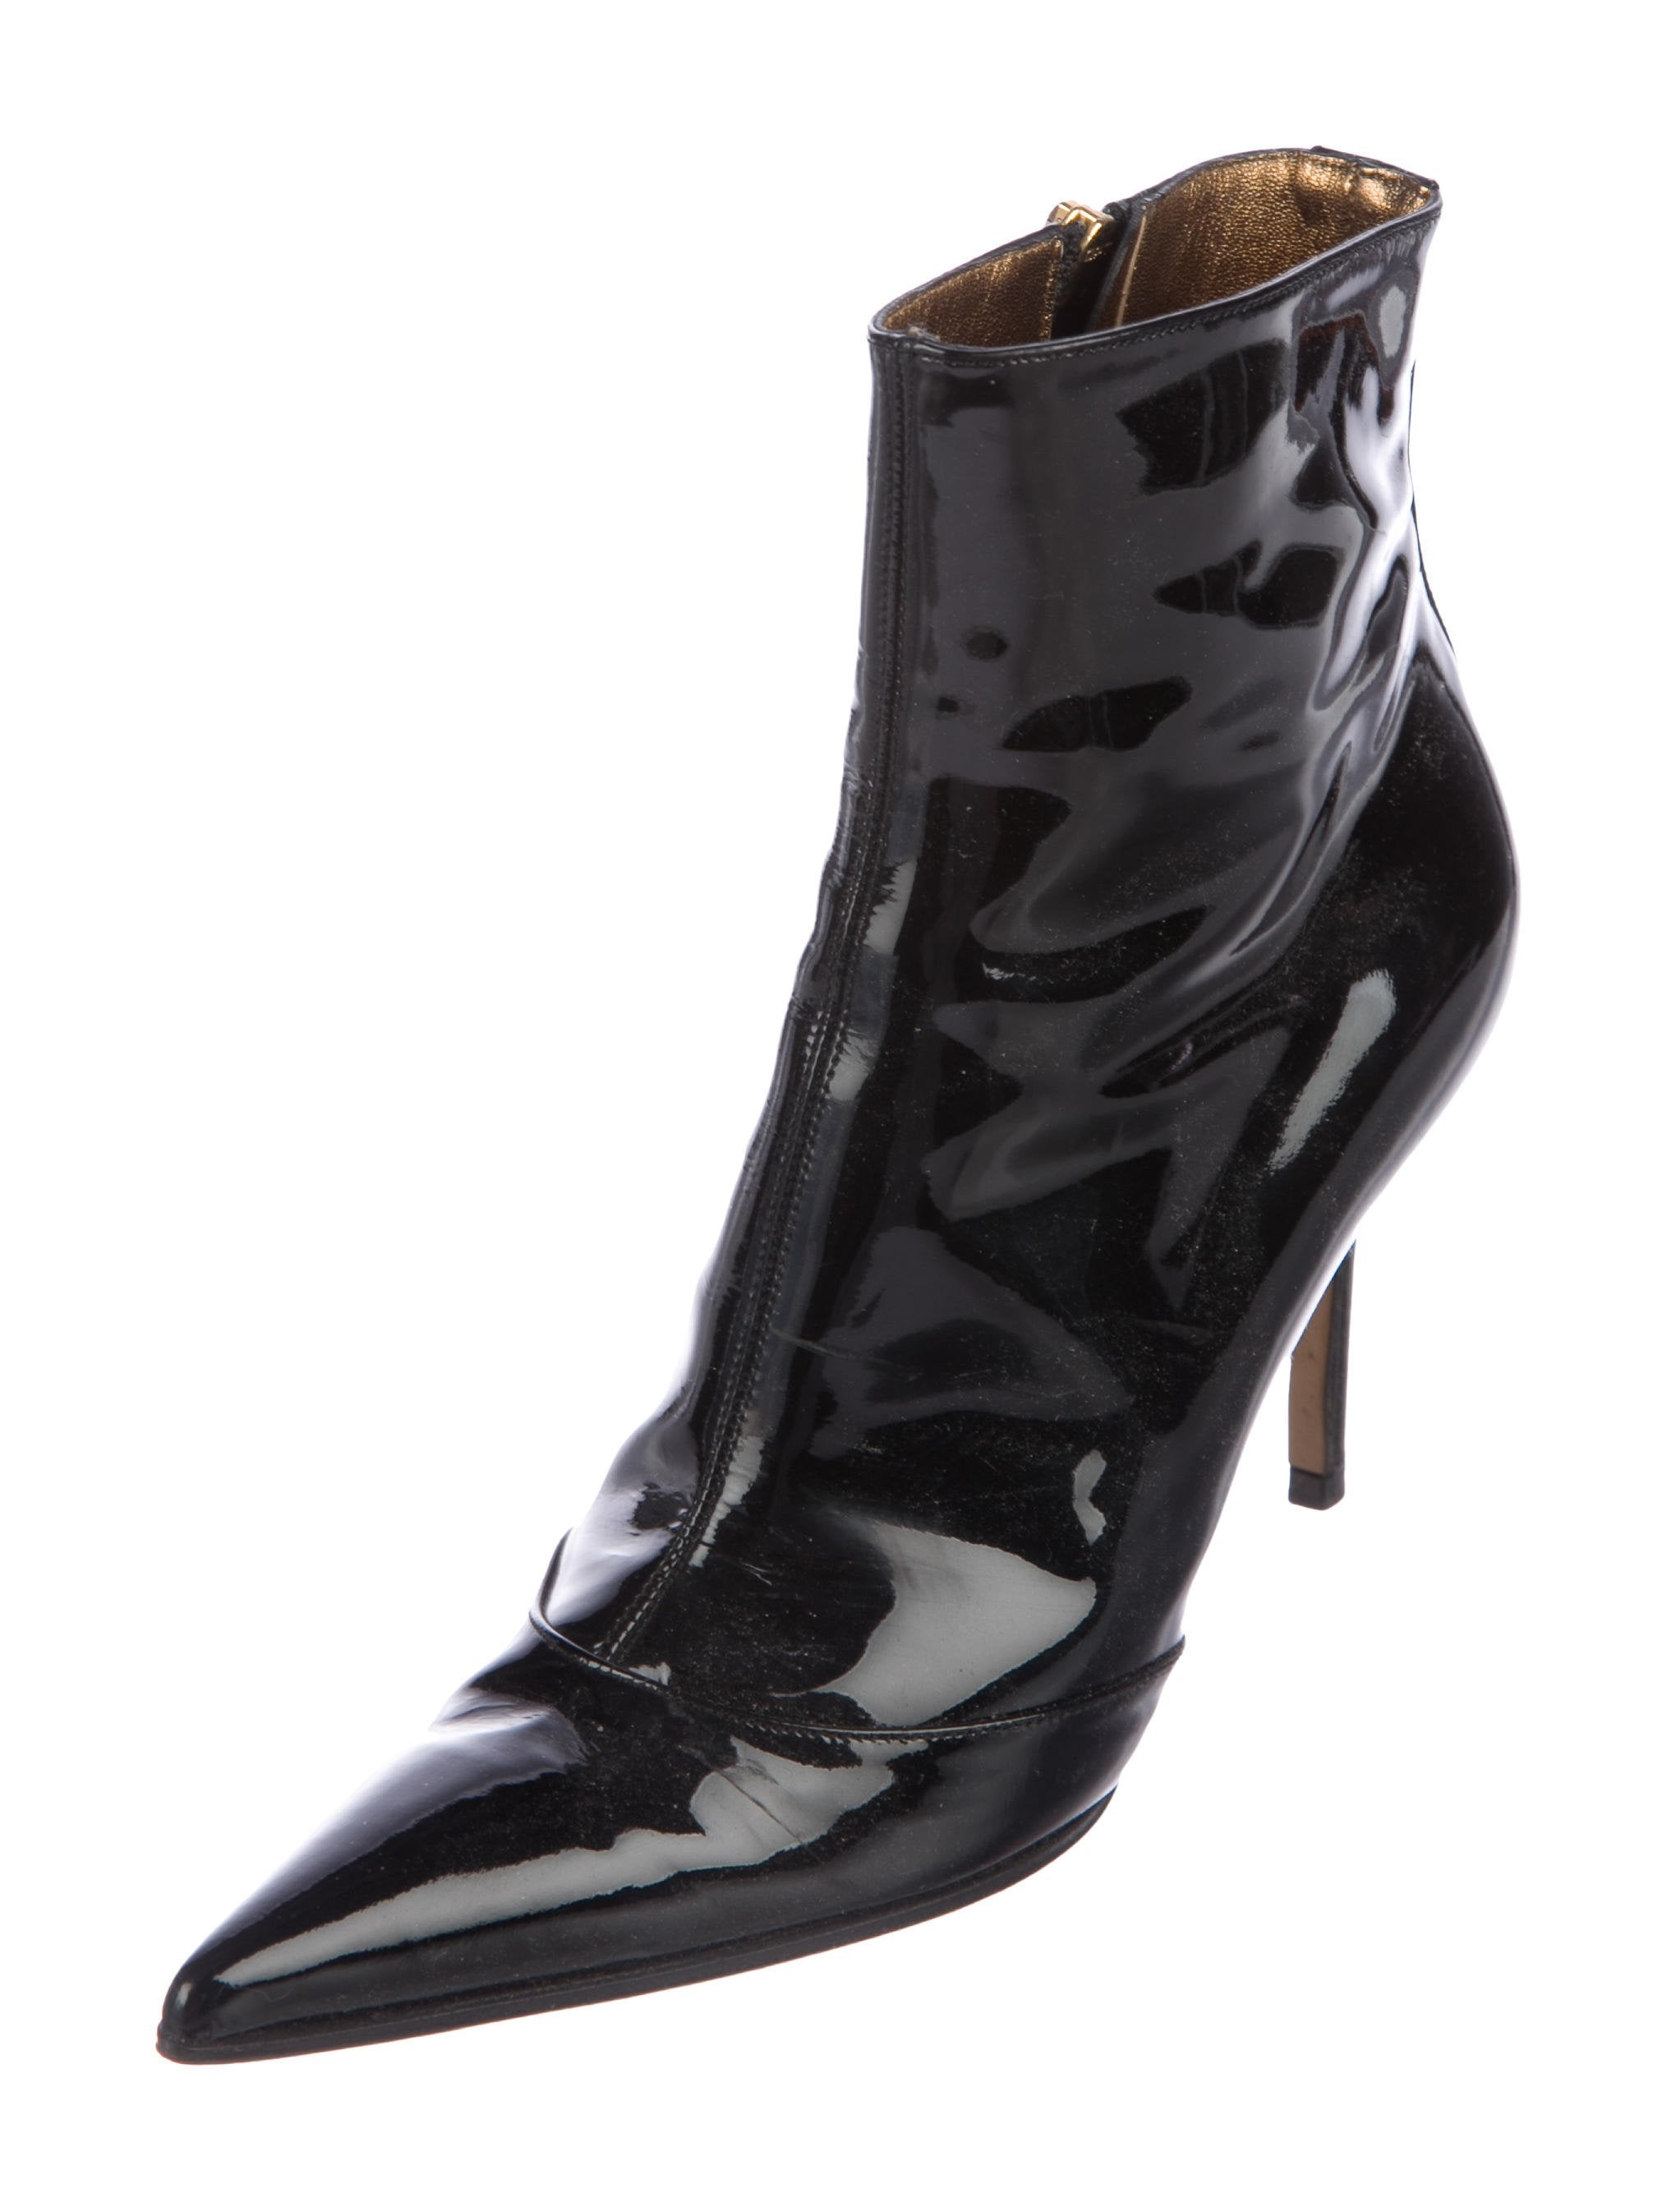 Dolce & Gabbana Patent Leather Pointed-Toe Booties cheap sale shop offer jurXb